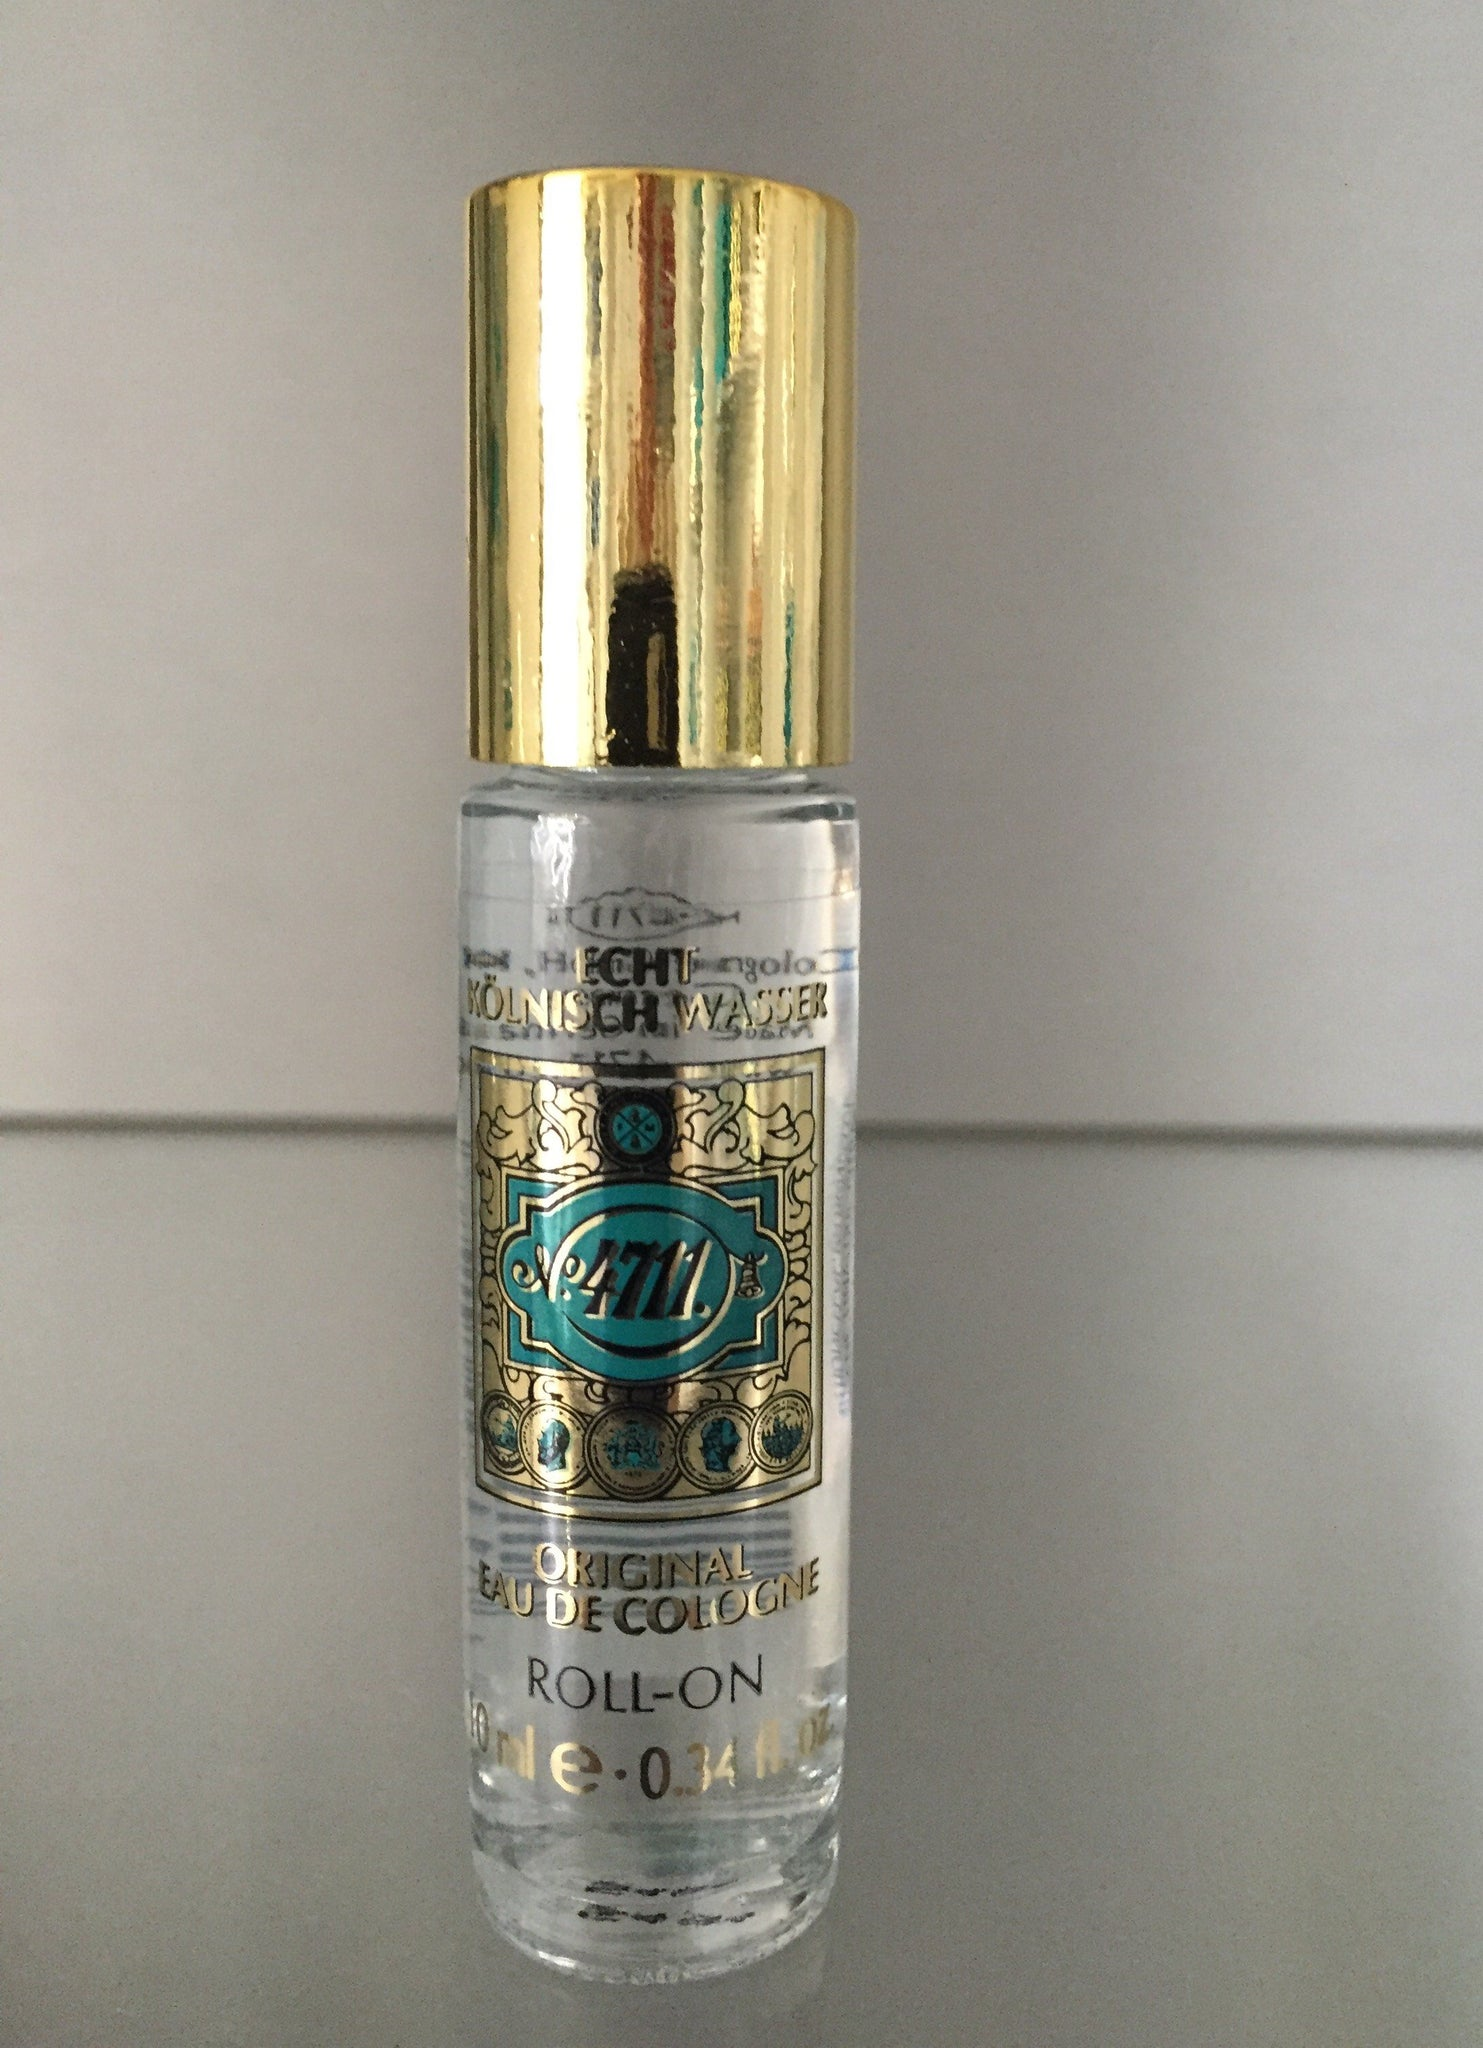 4711 Original Eau de Cologne, Roll-On - 10ml